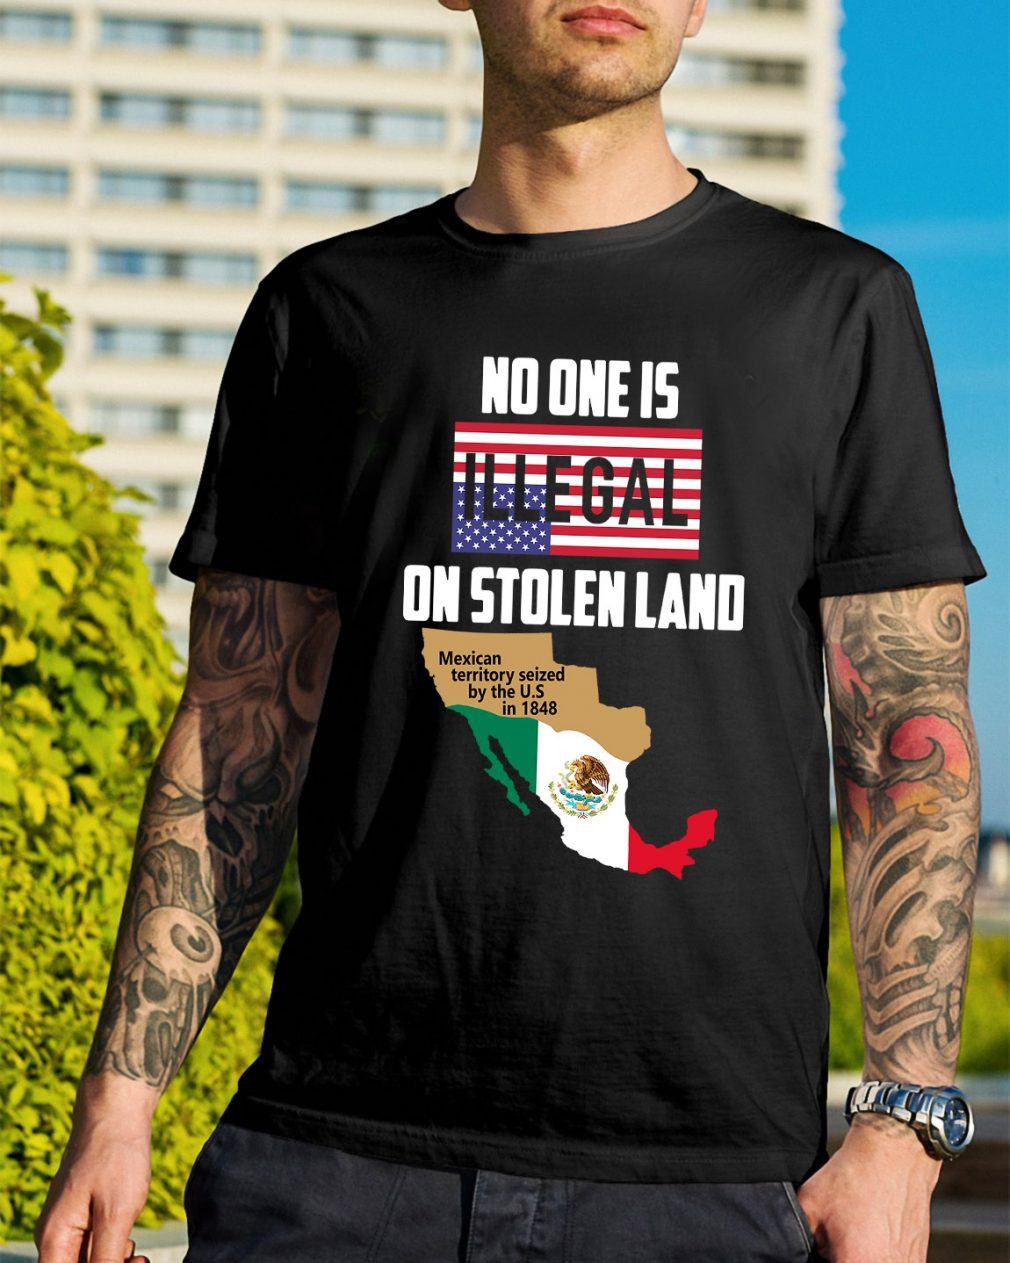 No one is Illegal on stolen land Mexican territory seized by the US shirt